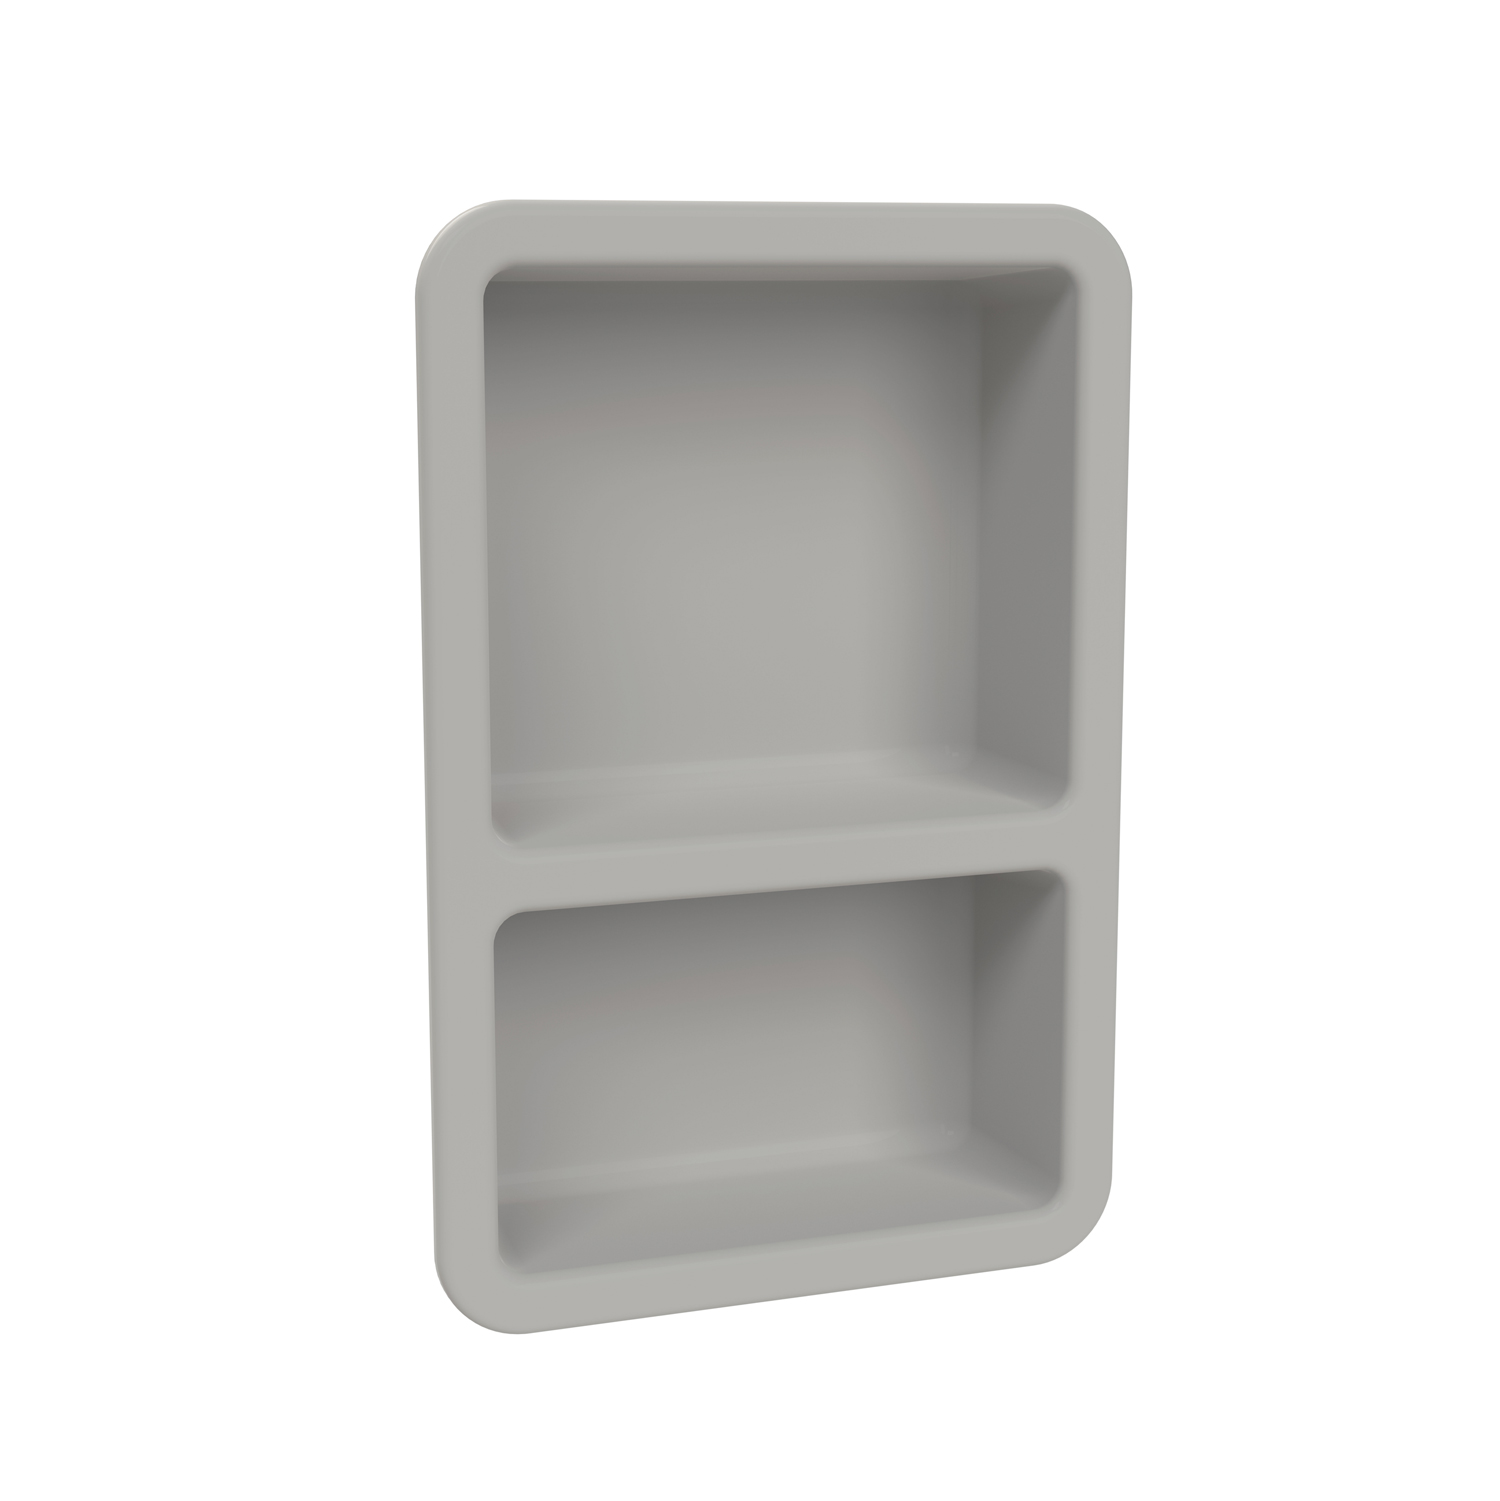 Recessed Toiletry Shelf